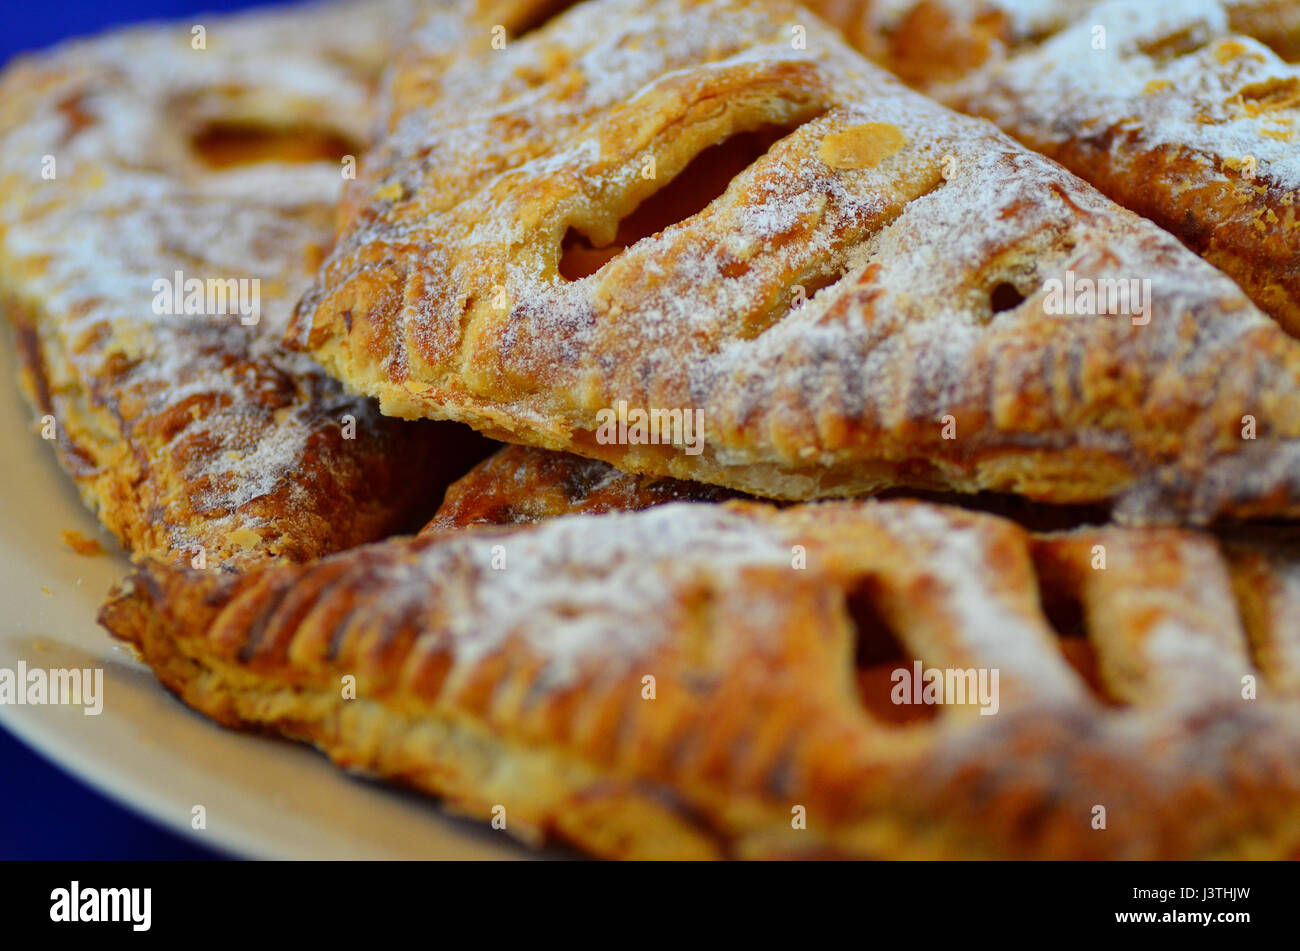 Apple turnover pastry desserts - Stock Image